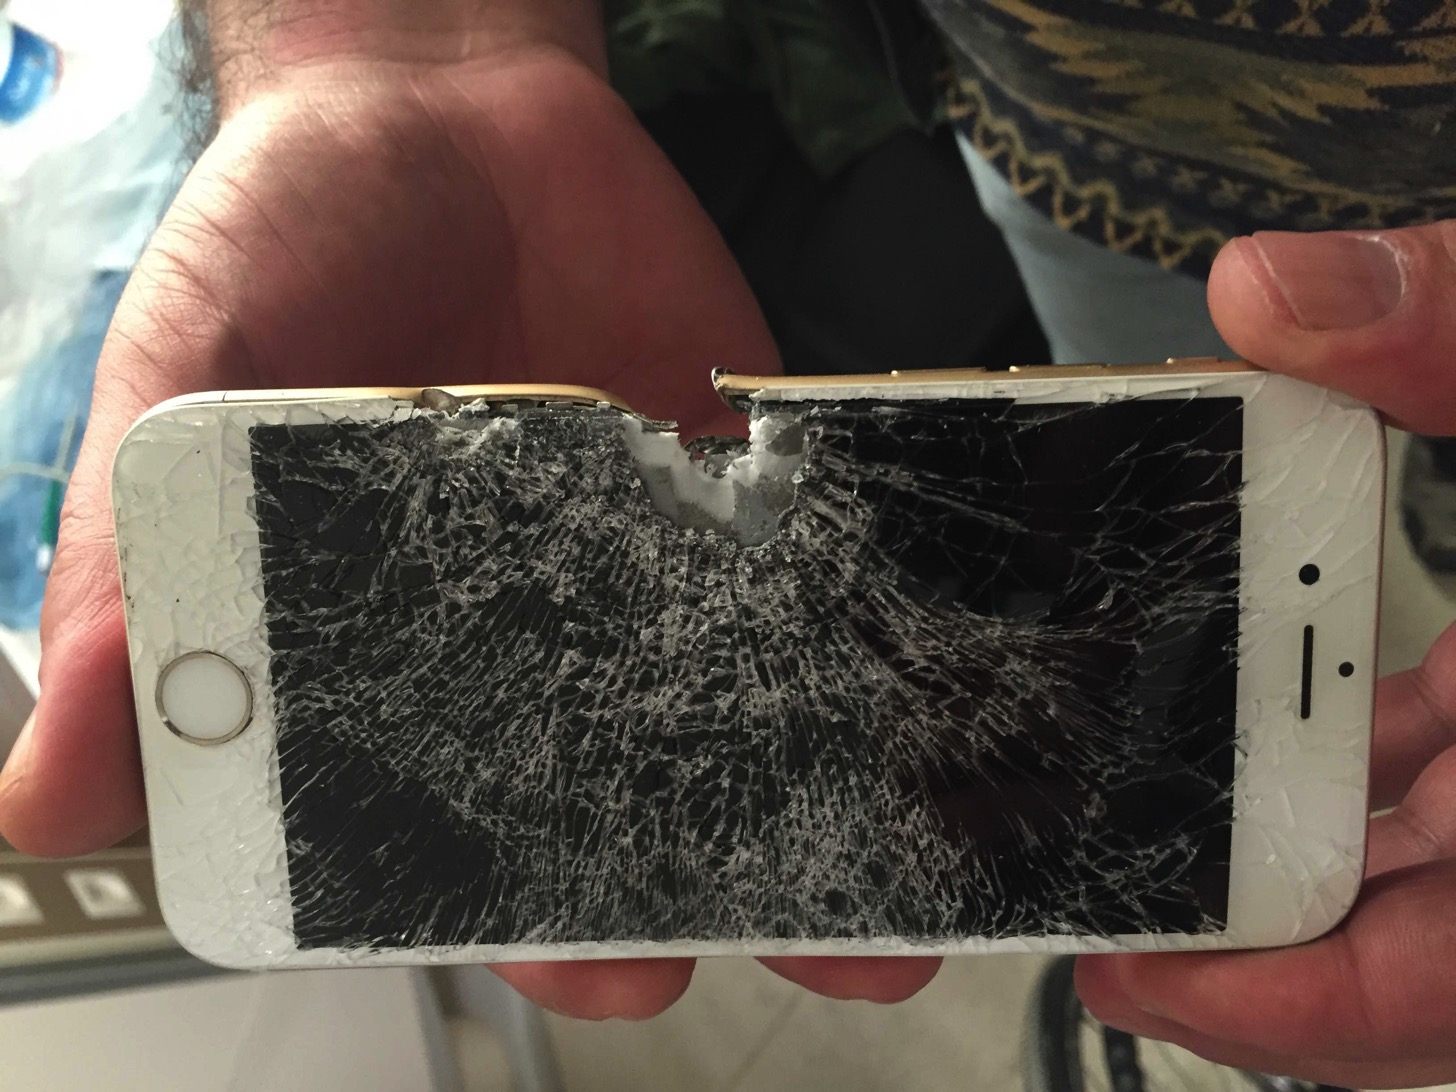 Story iphone saved the young soldier from bullet